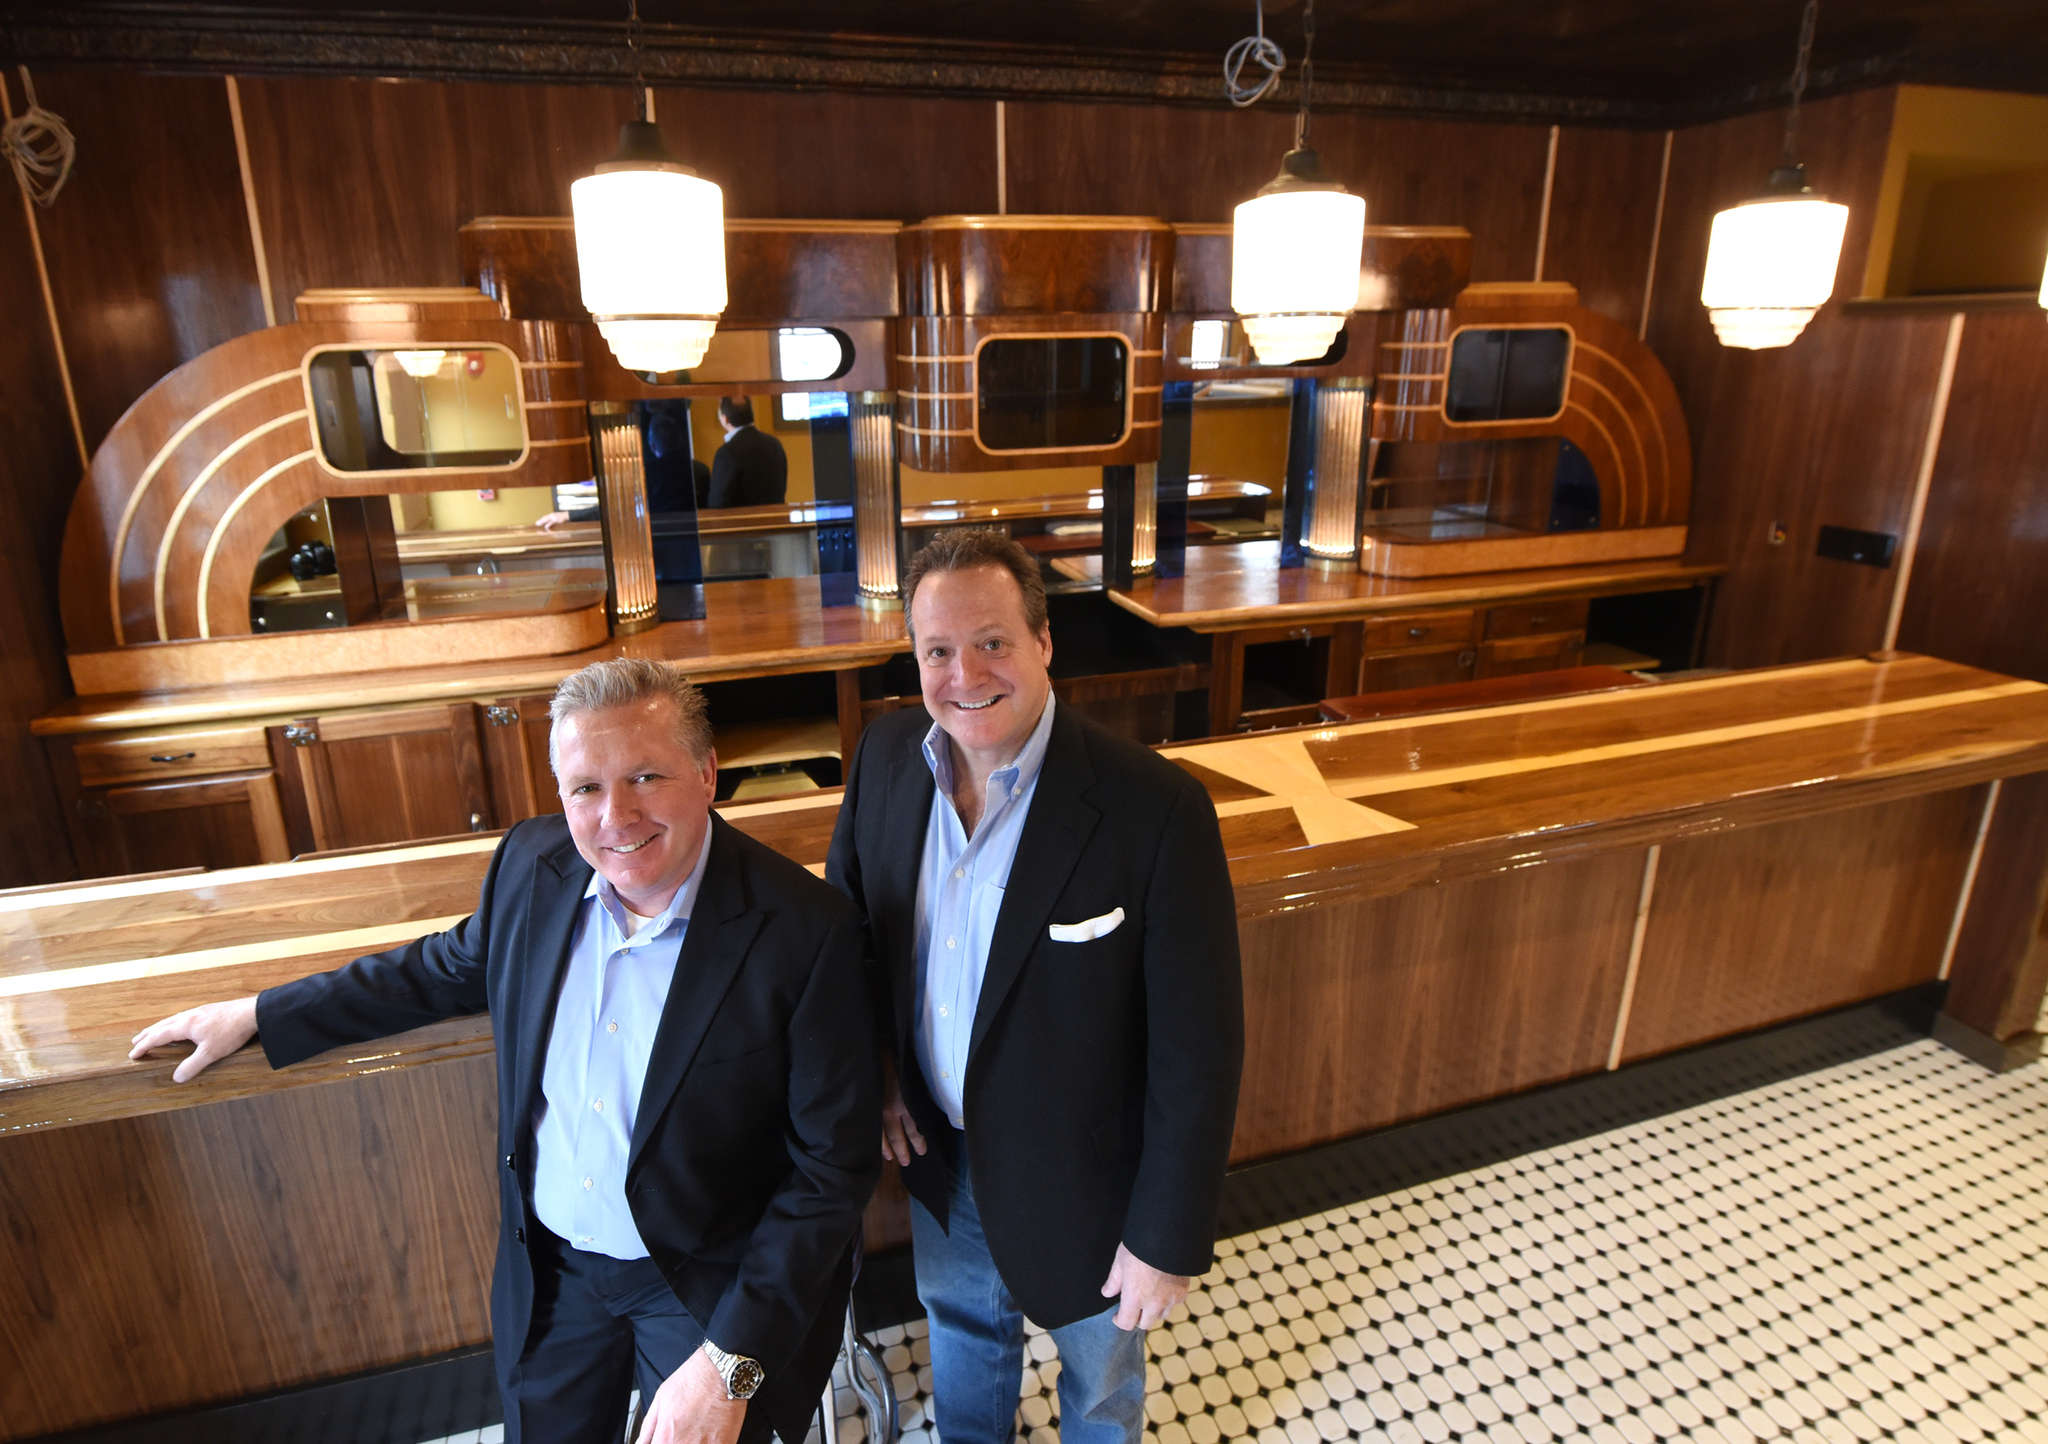 Tom Page (left) and Tom Monahan have resurrected Chubby´s, offering a new take on a beloved, long-gone night spot and steak house in Haddon Township. The new version is expected to open in the spring.